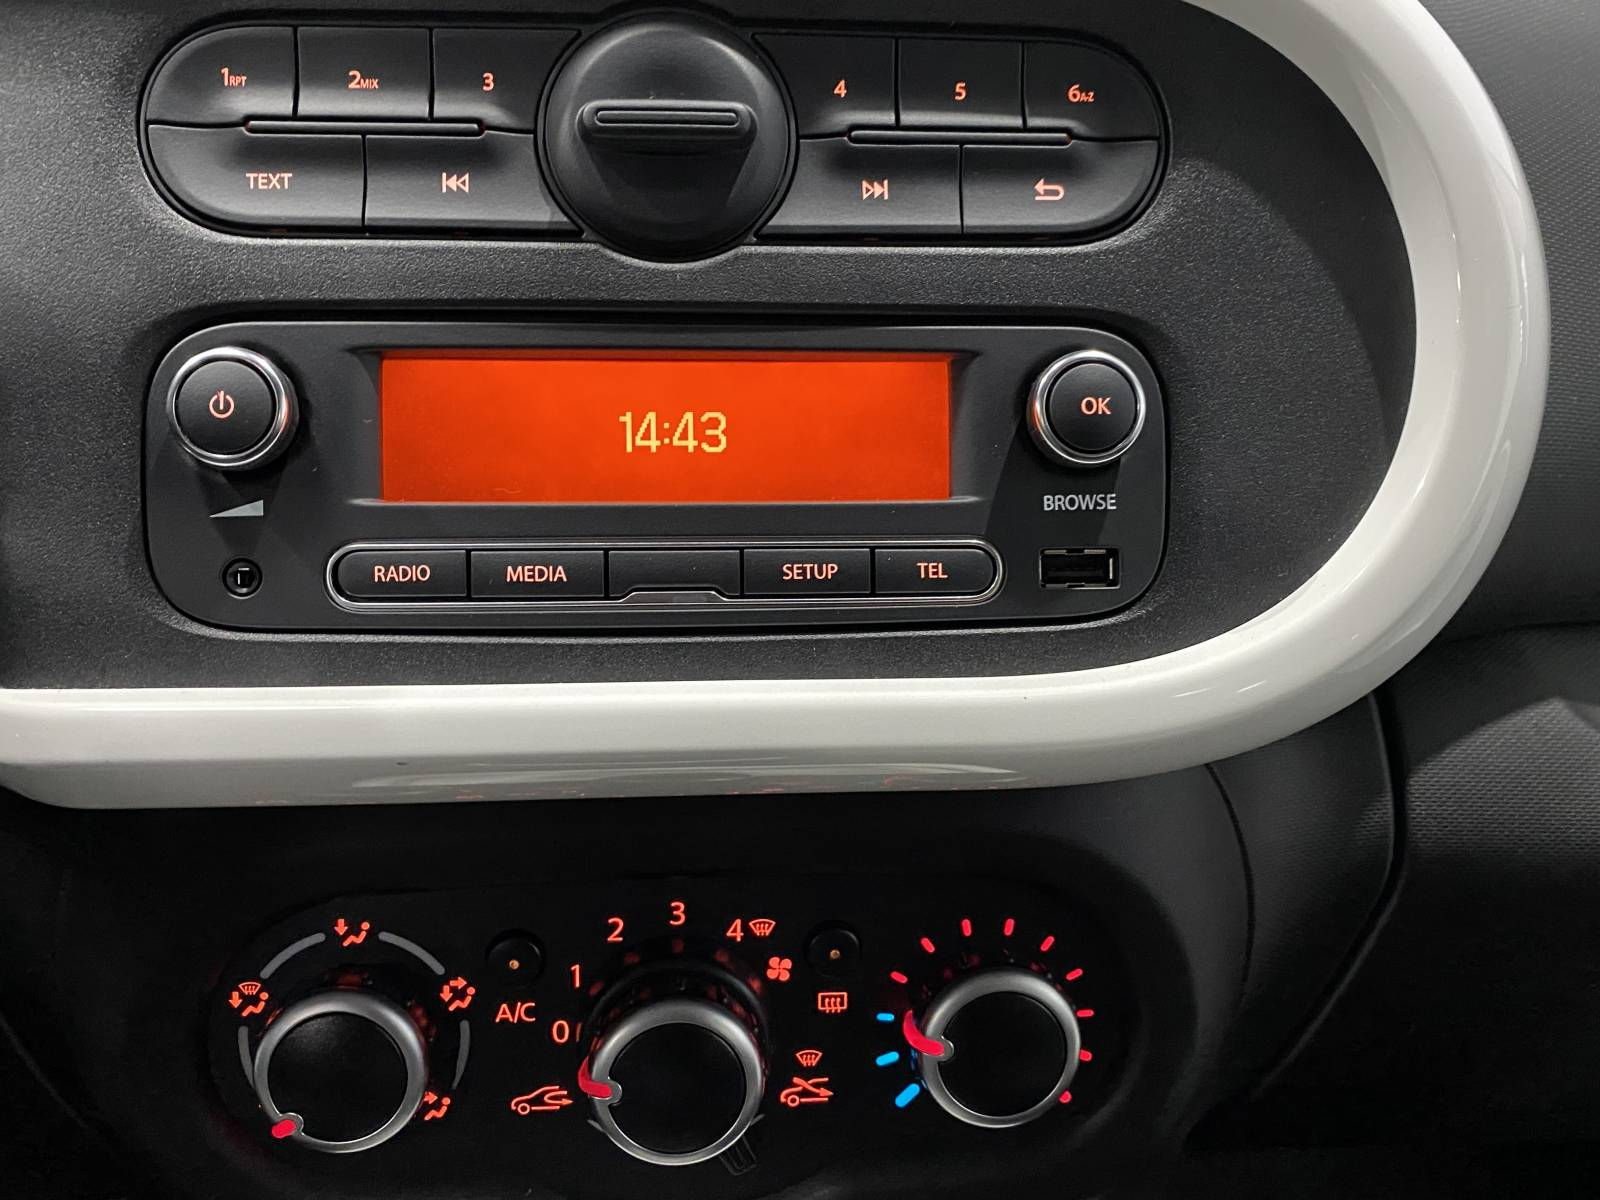 RENAULT Twingo III 0.9 TCe 90 Energy E6C - véhicule d'occasion - Site Internet Faurie - Renault - Faurie Auto Limoges - 87000 - Limoges - 2